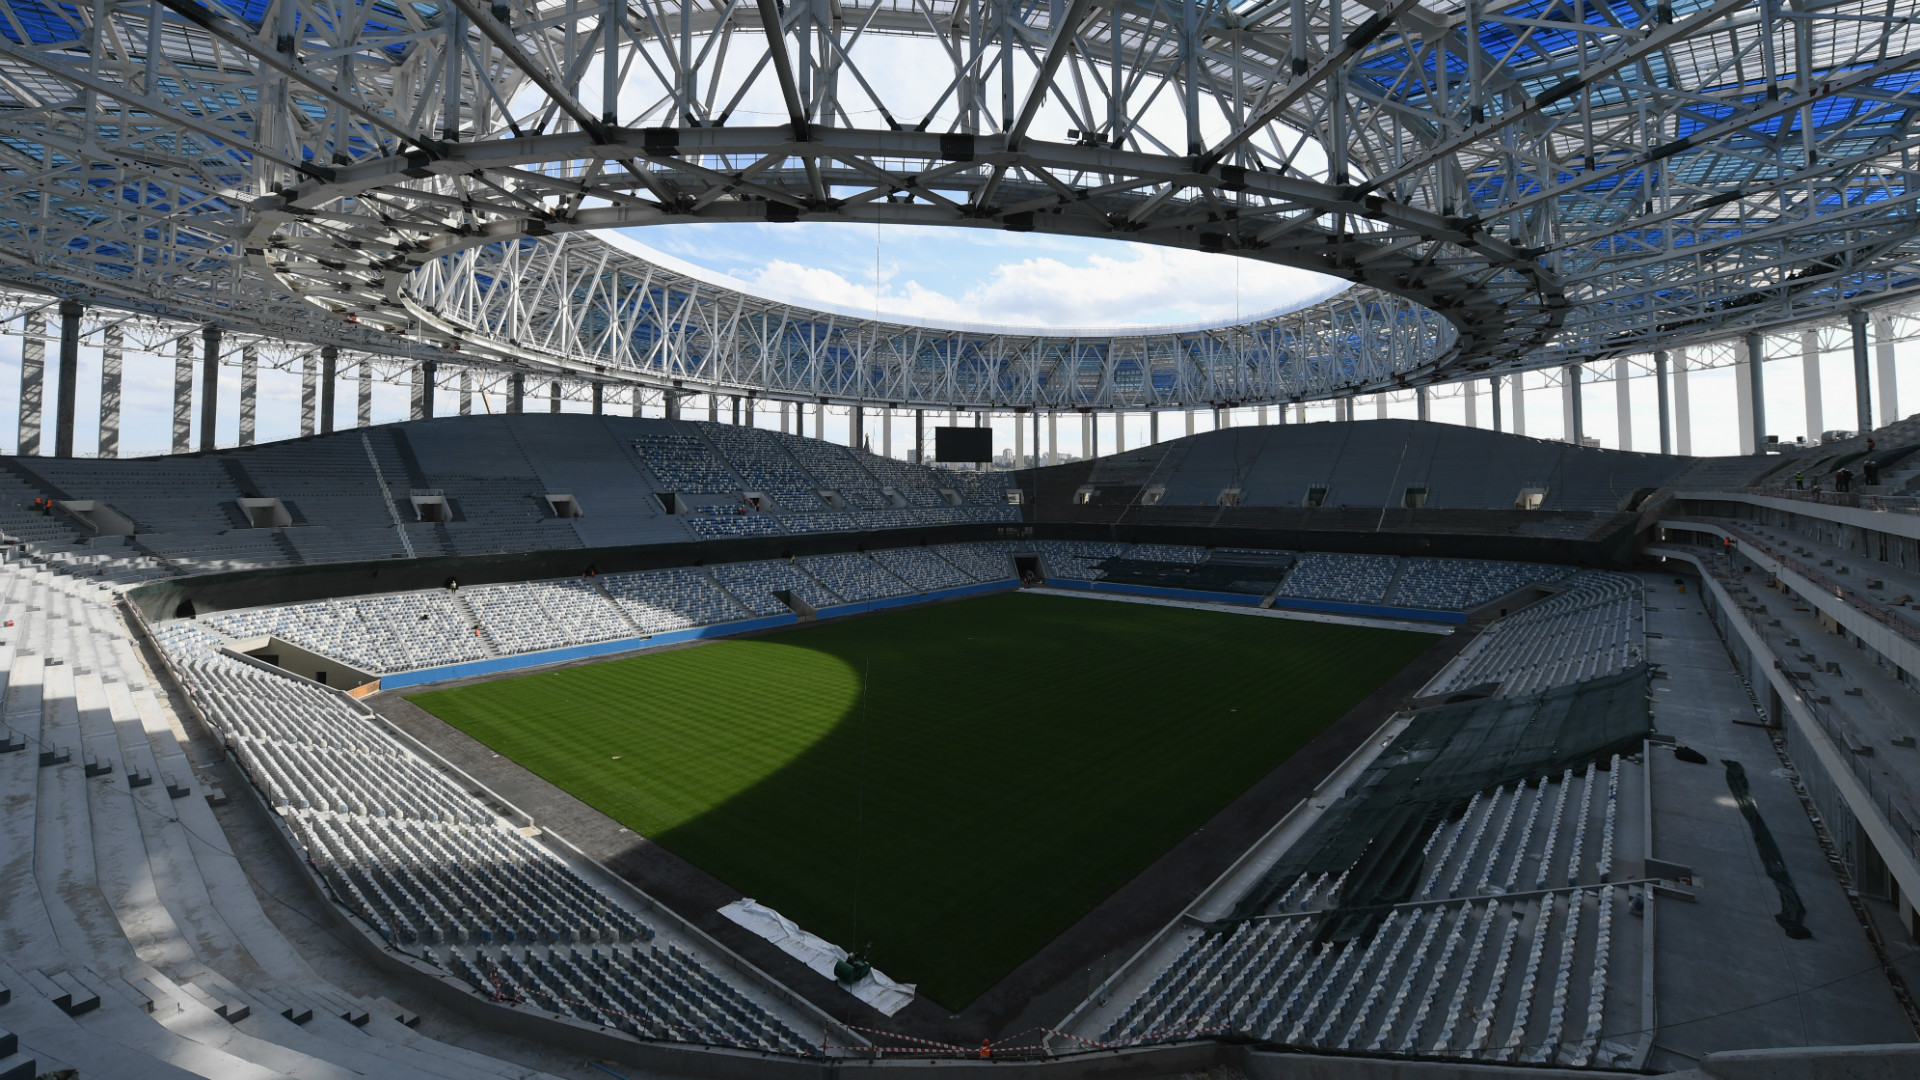 Nizhny Novogorod World Cup stadium